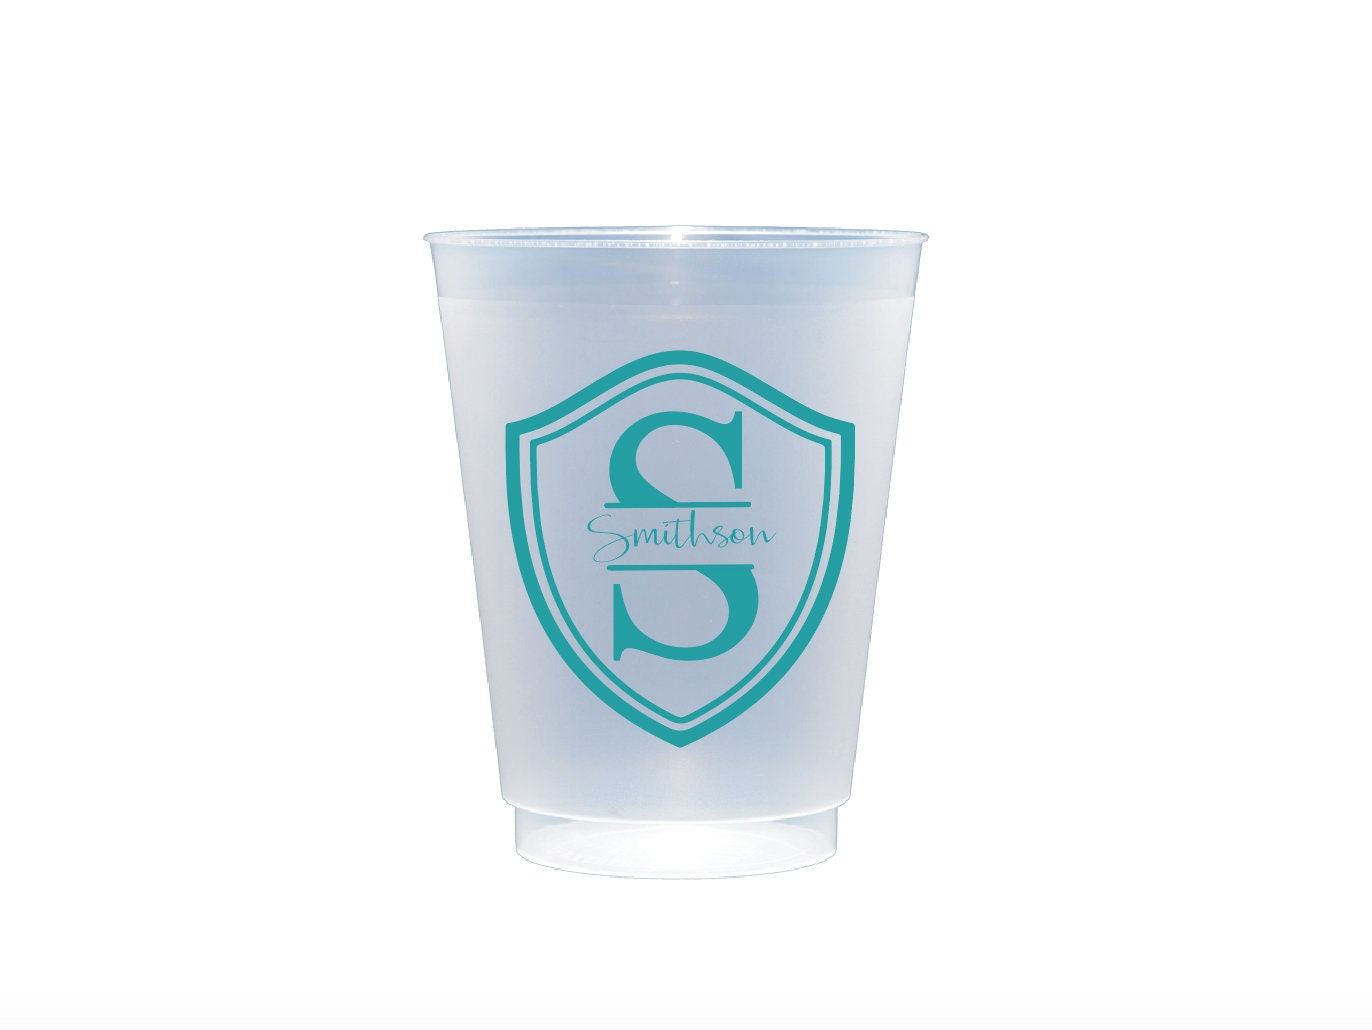 ae089c9f6453c Personalized cups Shatterproof cups Wedding Cups Frosted Cups ...